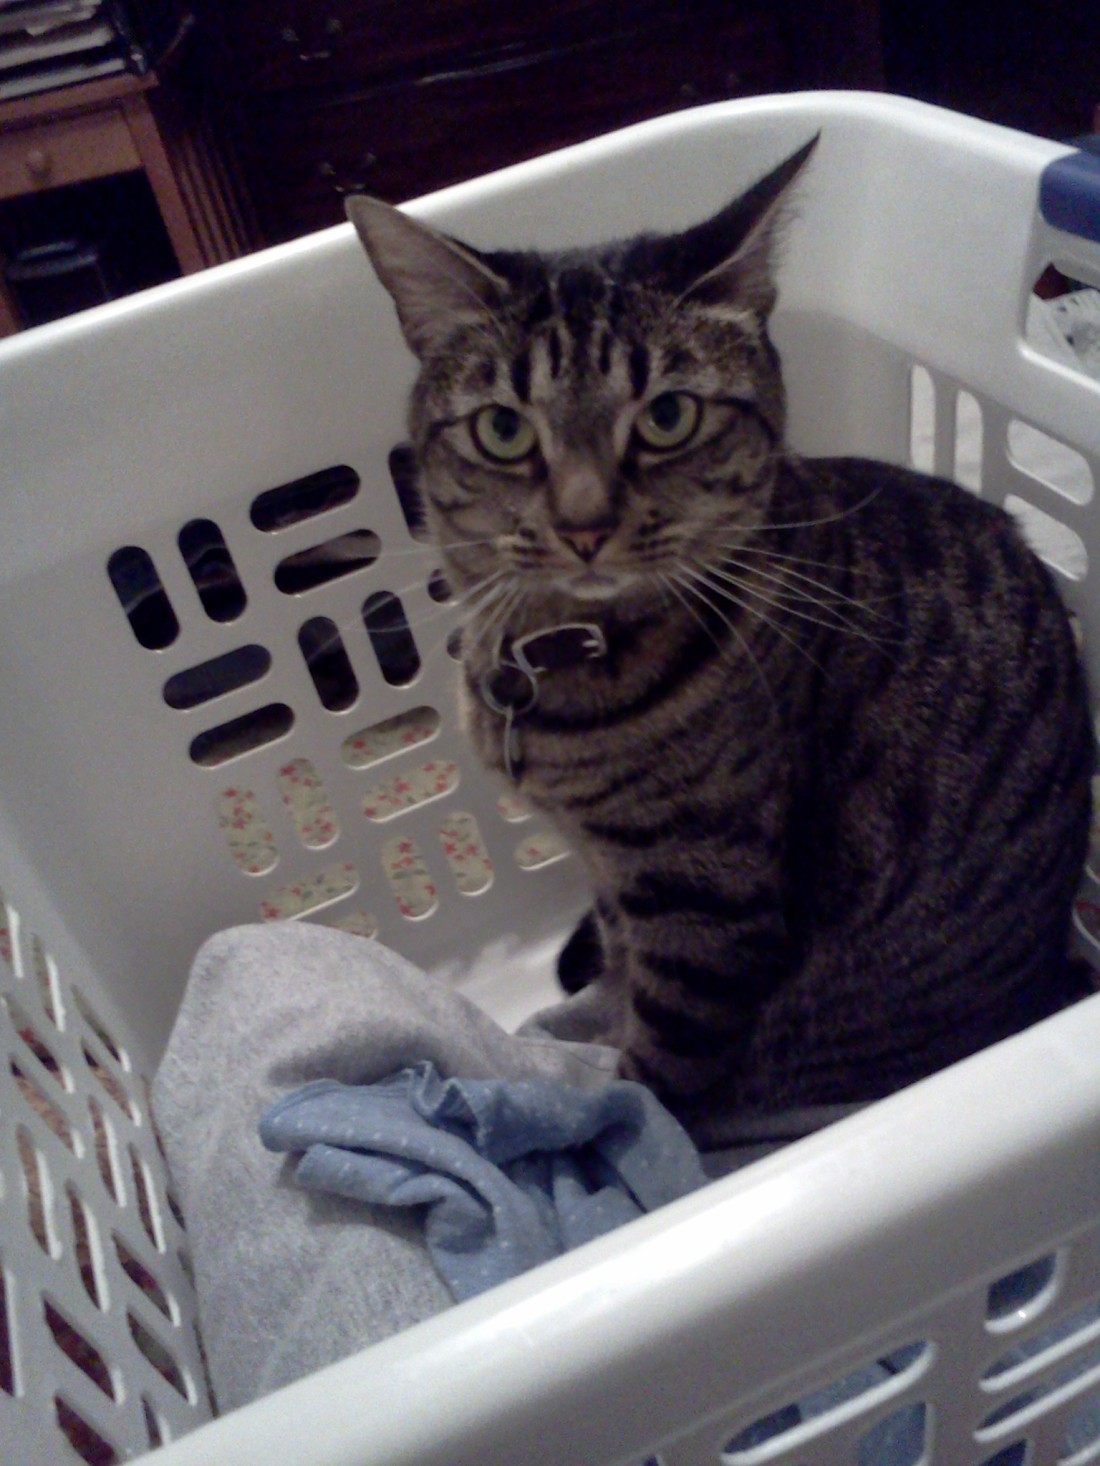 Tiger Lily in a basket